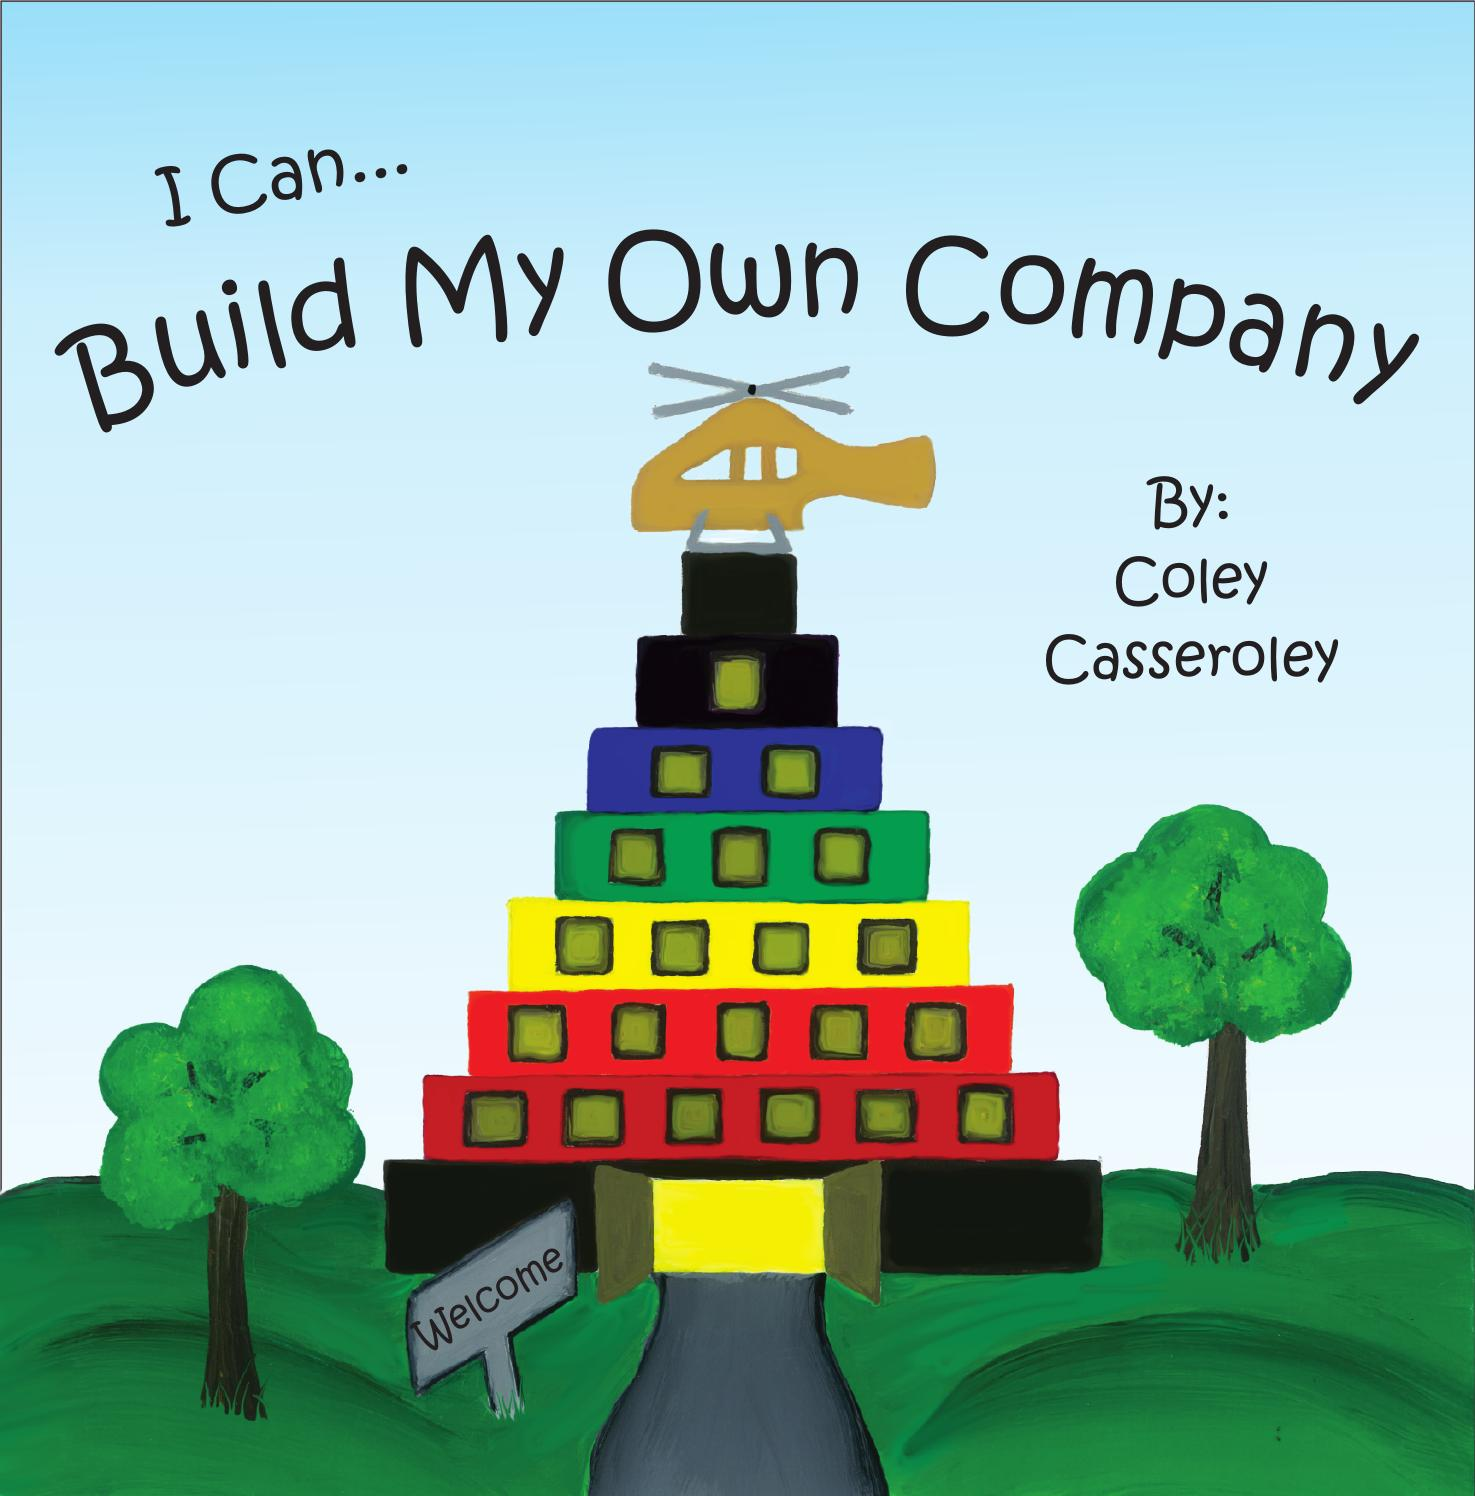 I Can Build My Own Company By Bright-Brained Toys